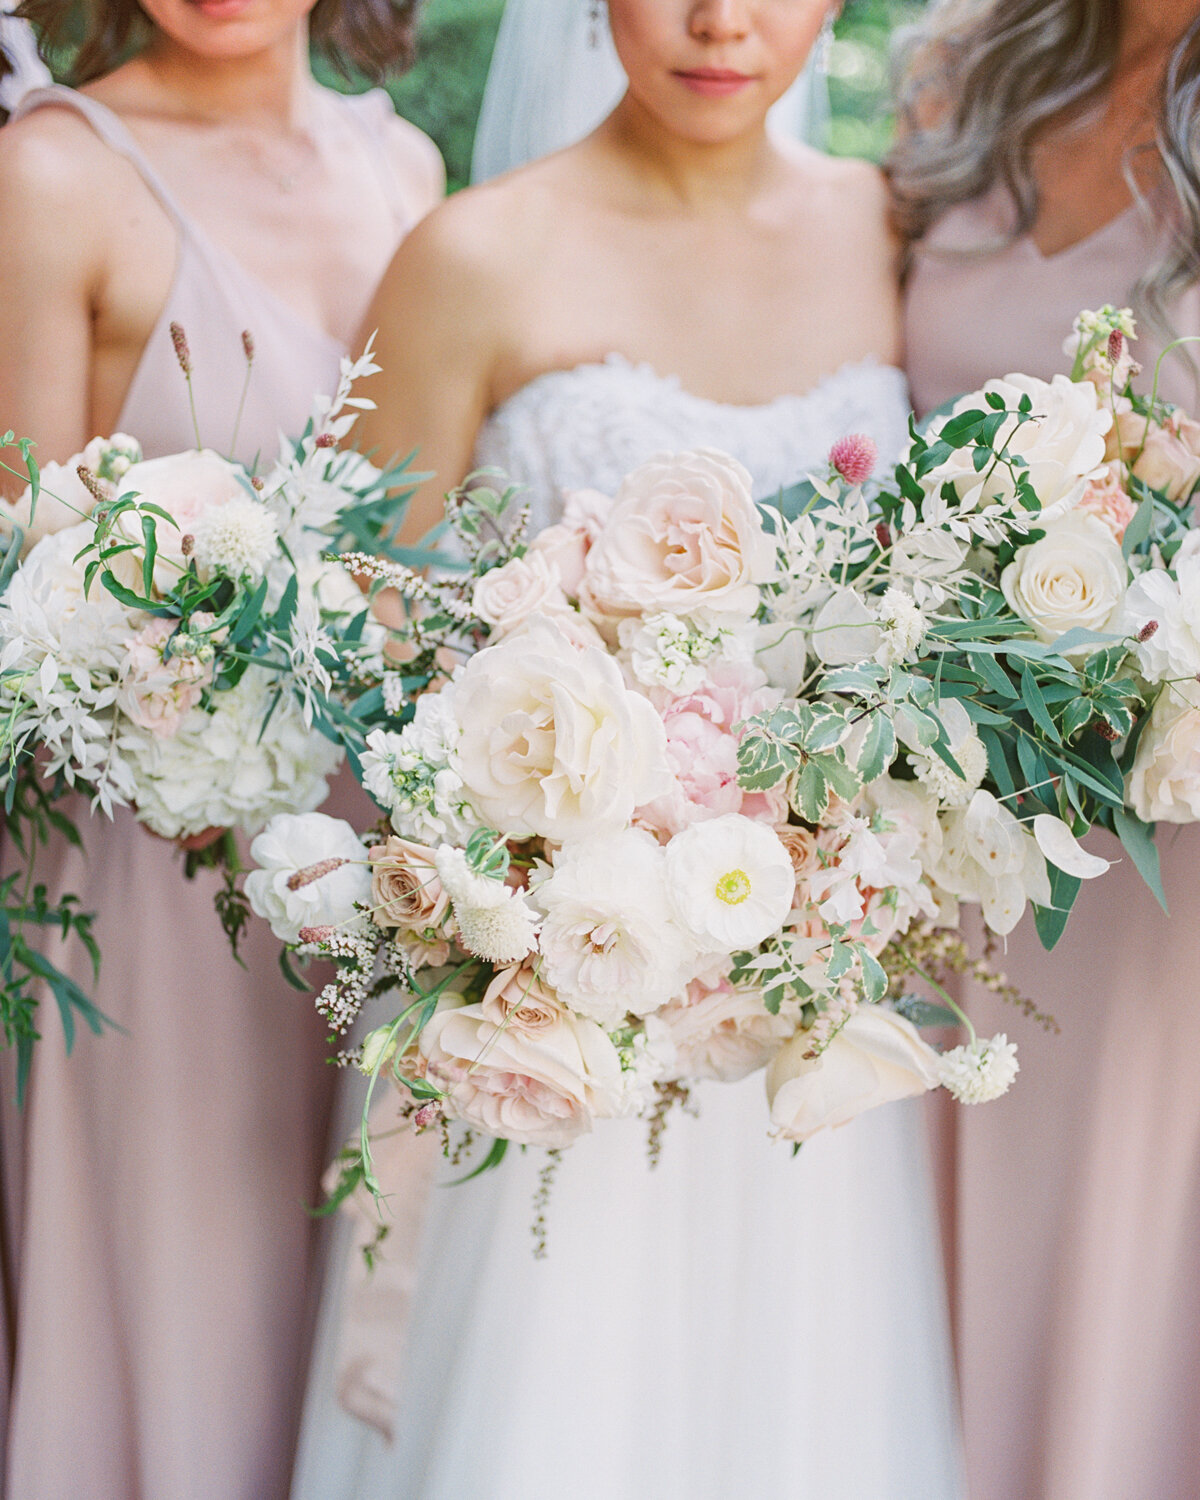 Bridesmaids bouquets in blush